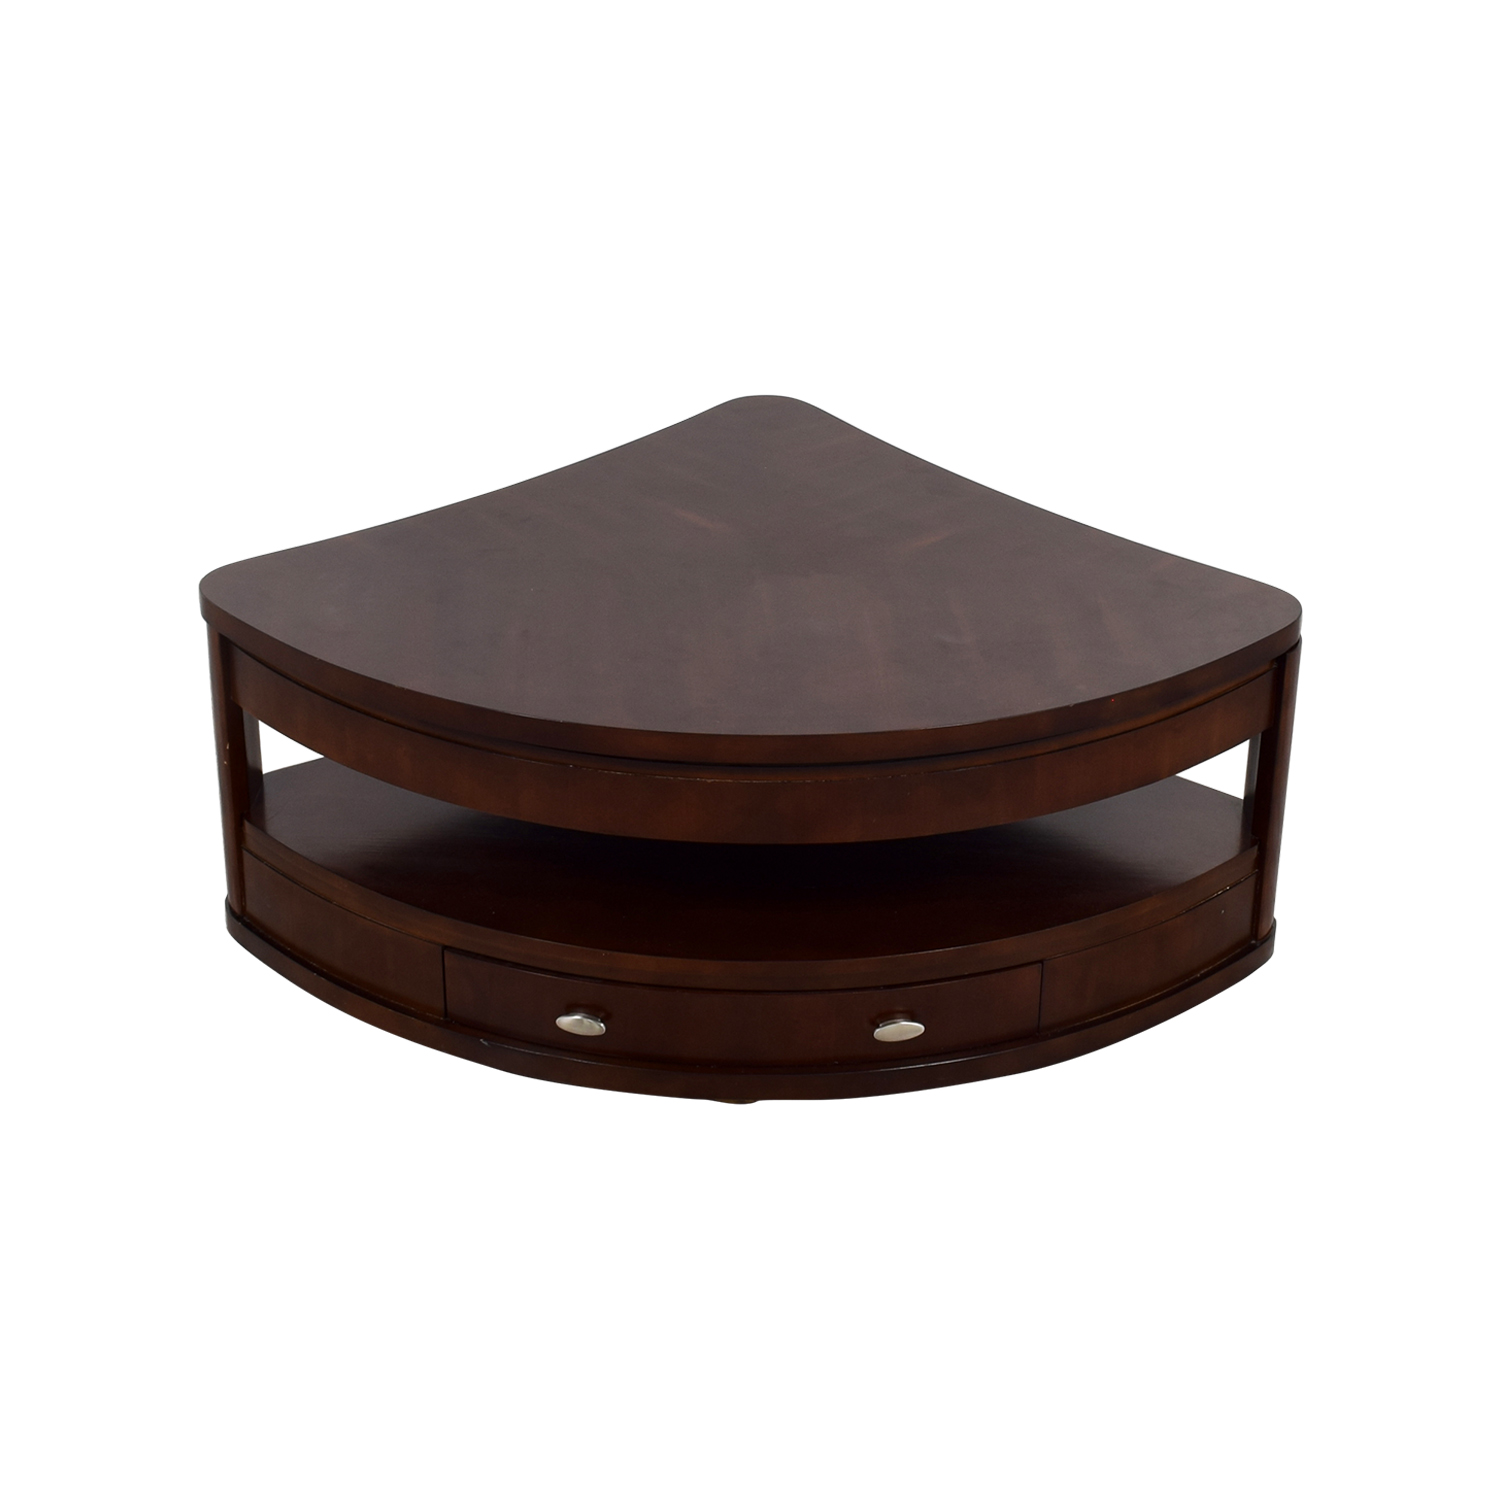 buy Triangular Rounded Lift-top Coffee Table online